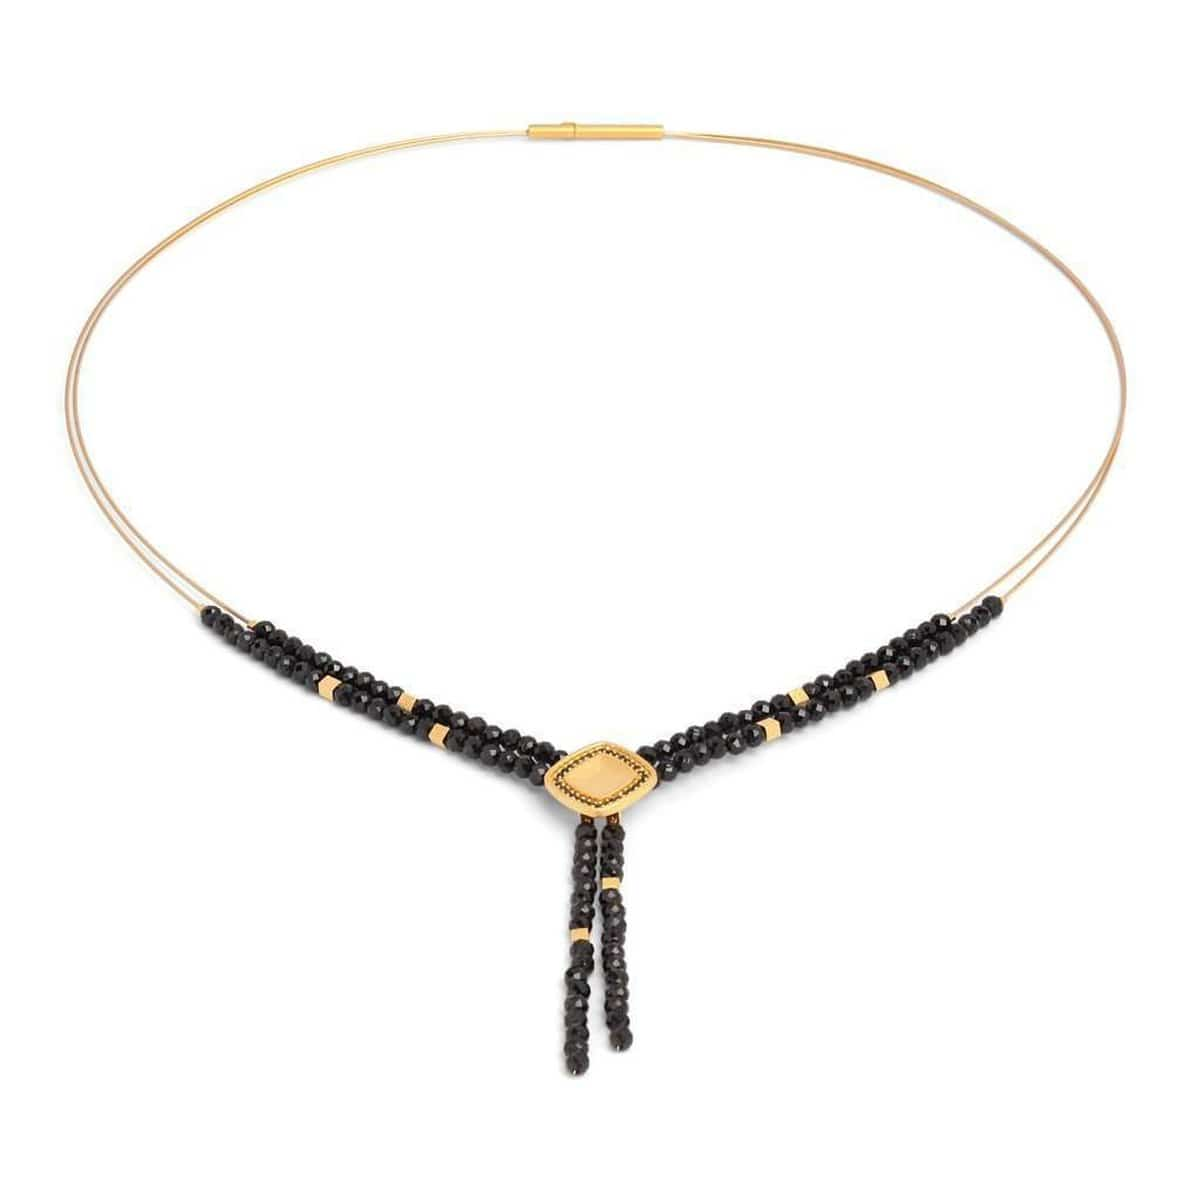 Ypava Black Spinel Necklace - 85614496-Bernd Wolf-Renee Taylor Gallery